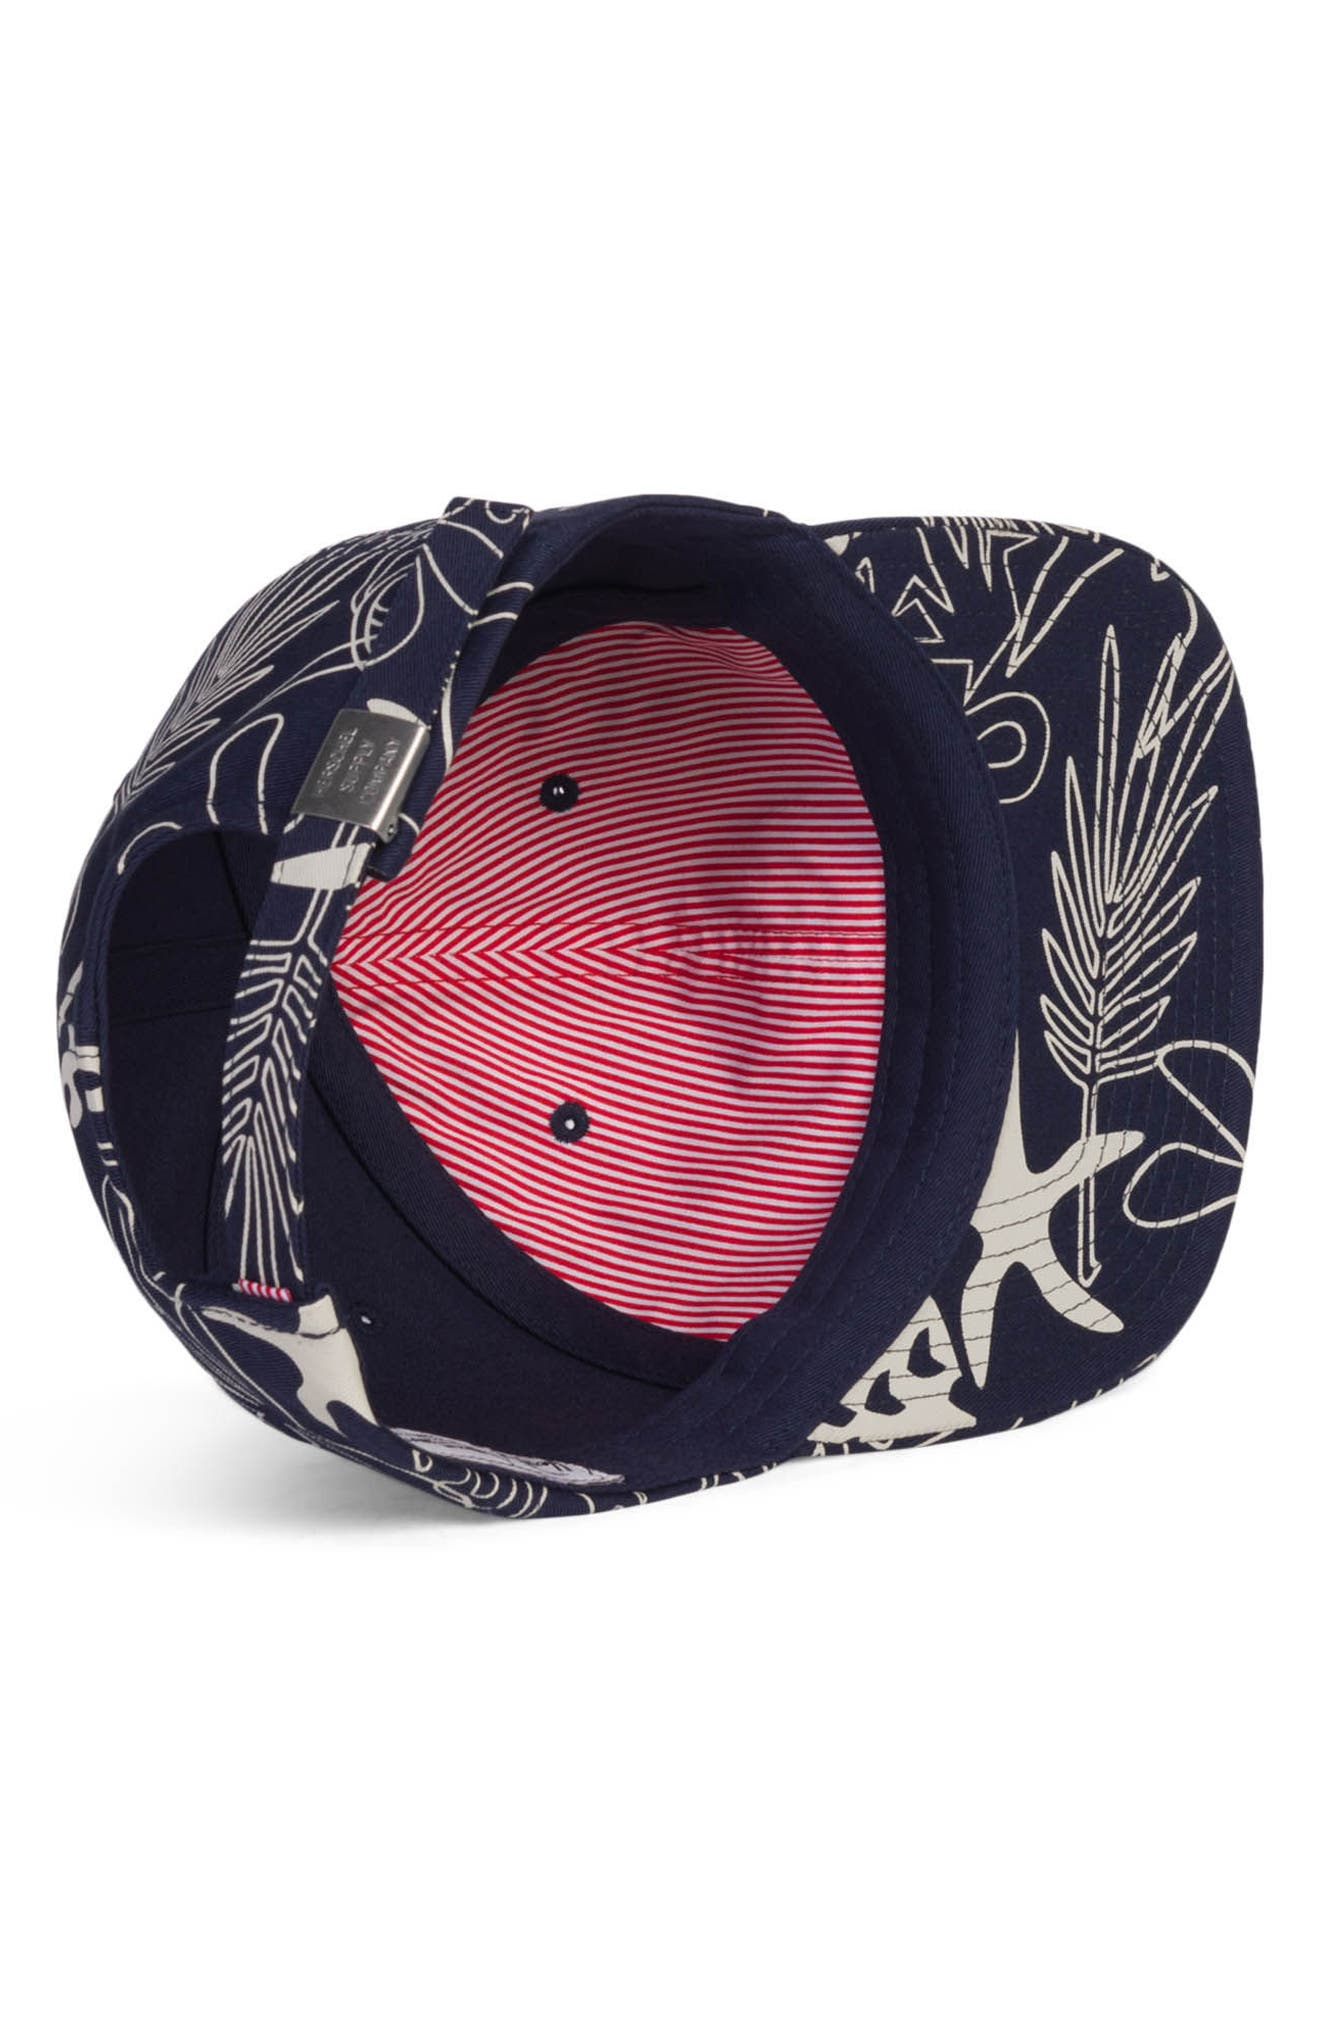 Albert Baseball Cap,                             Alternate thumbnail 3, color,                             Abstract Island